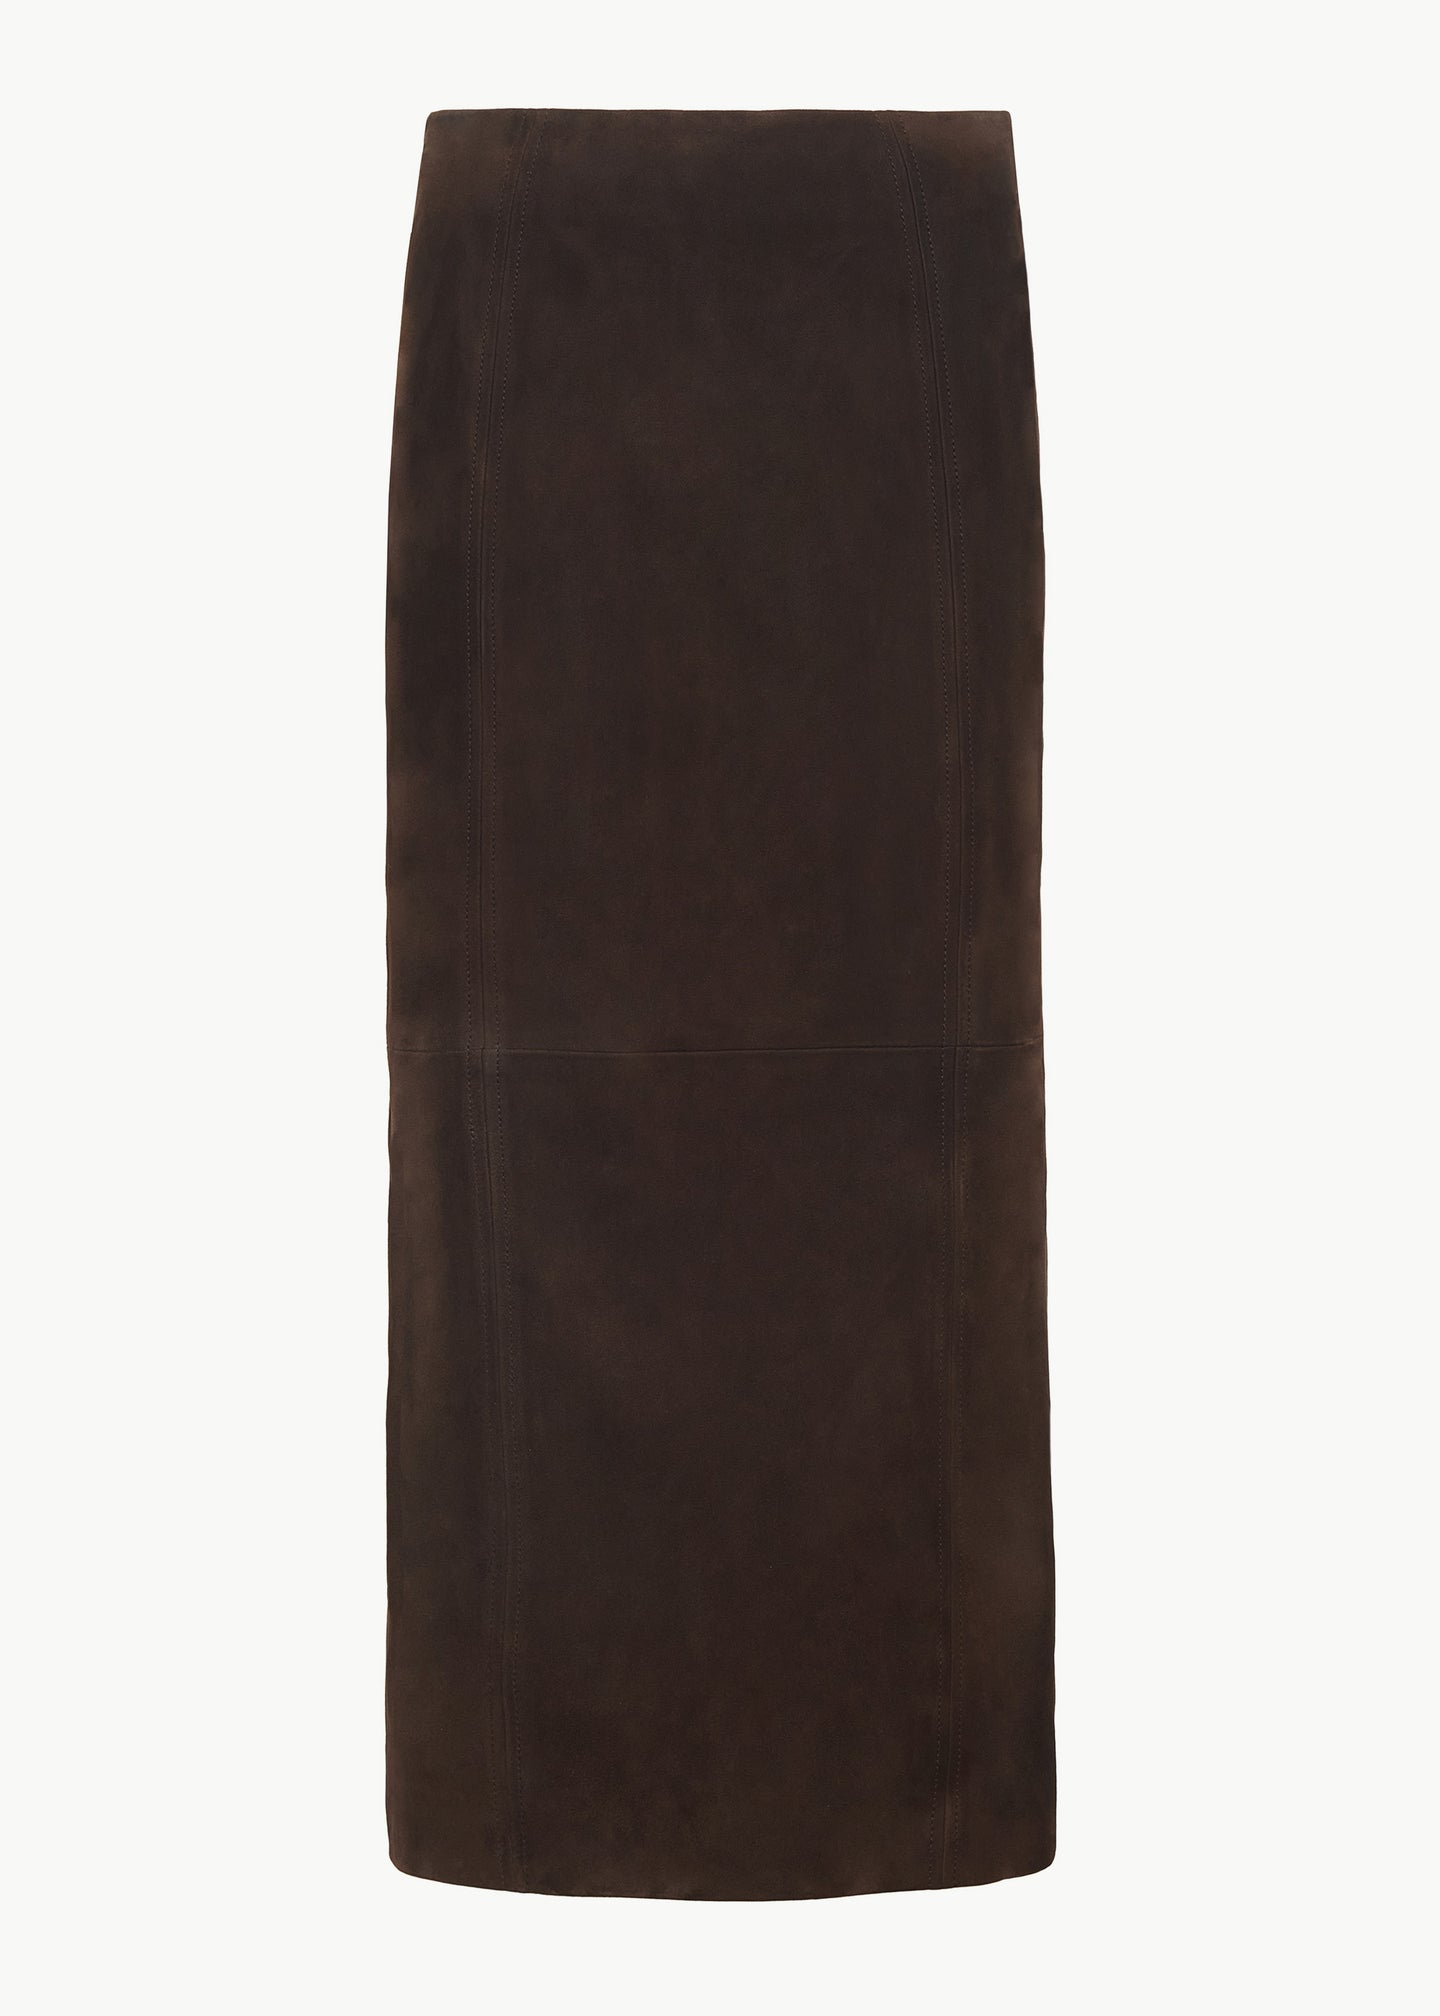 CO - Pencil Skirt in Suede - Brown